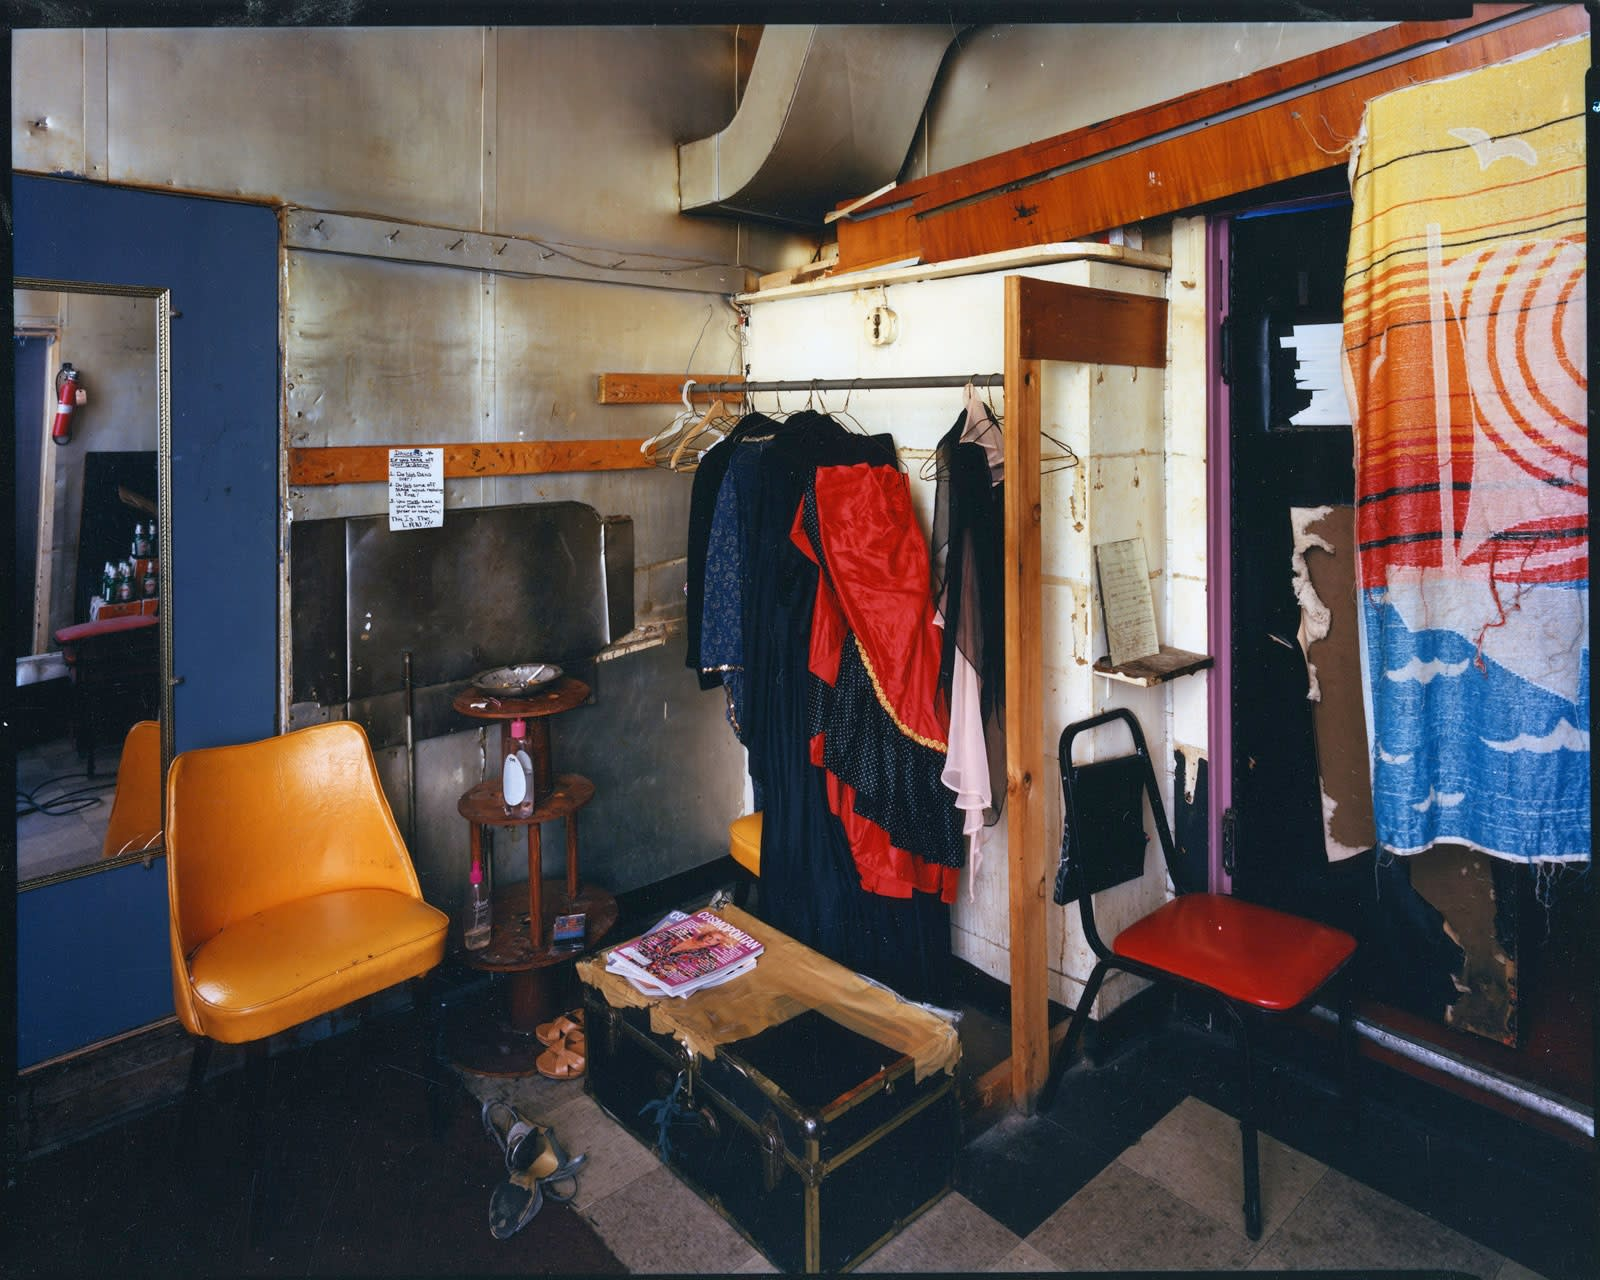 Bruce Wrighton Gold chair on left, in front of mirror, trunk on floor, clothes hanging from rod Tirage C-print d'époque 20 x 25 cm Dim. papier: 20 x 25 cm